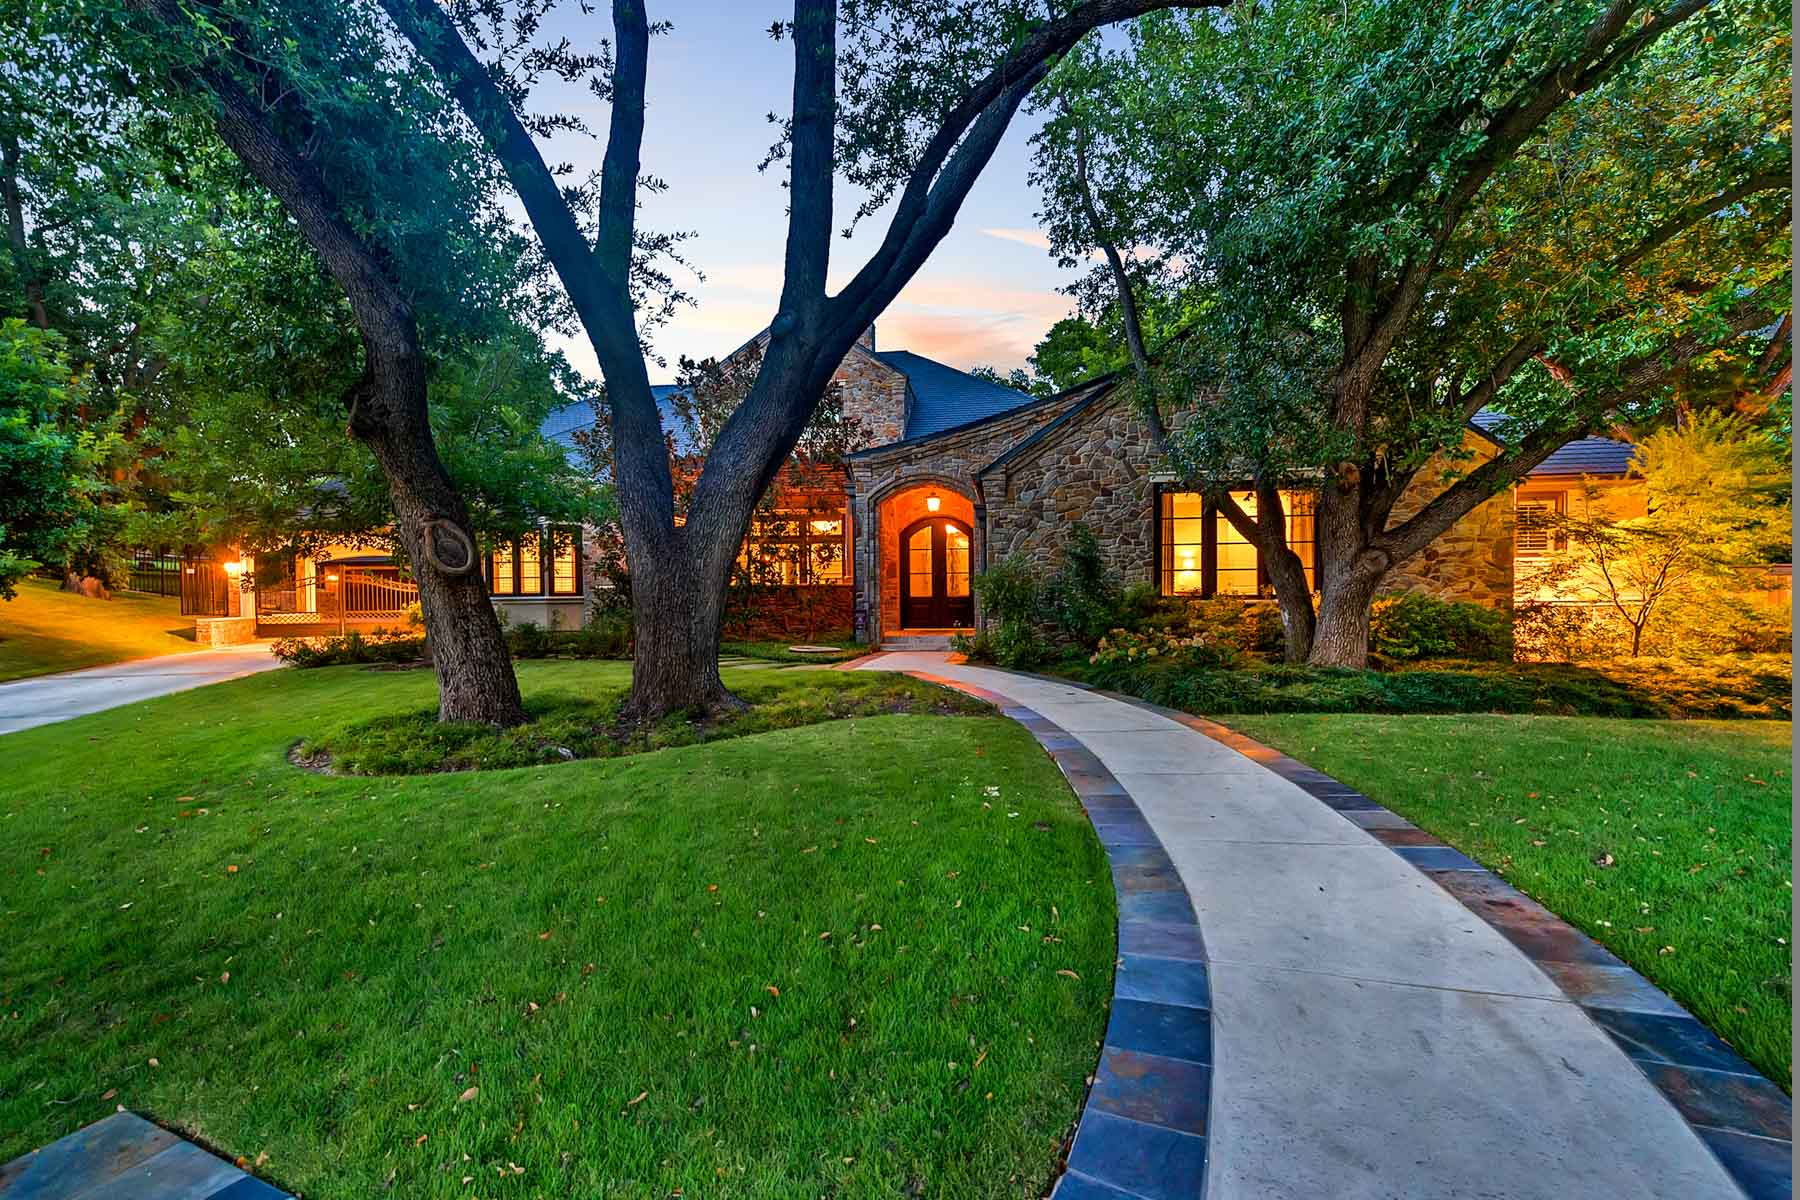 Casa Unifamiliar por un Venta en Ridgmar Traditional 1701 Dakar Rd E Fort Worth, Texas 76116 Estados Unidos